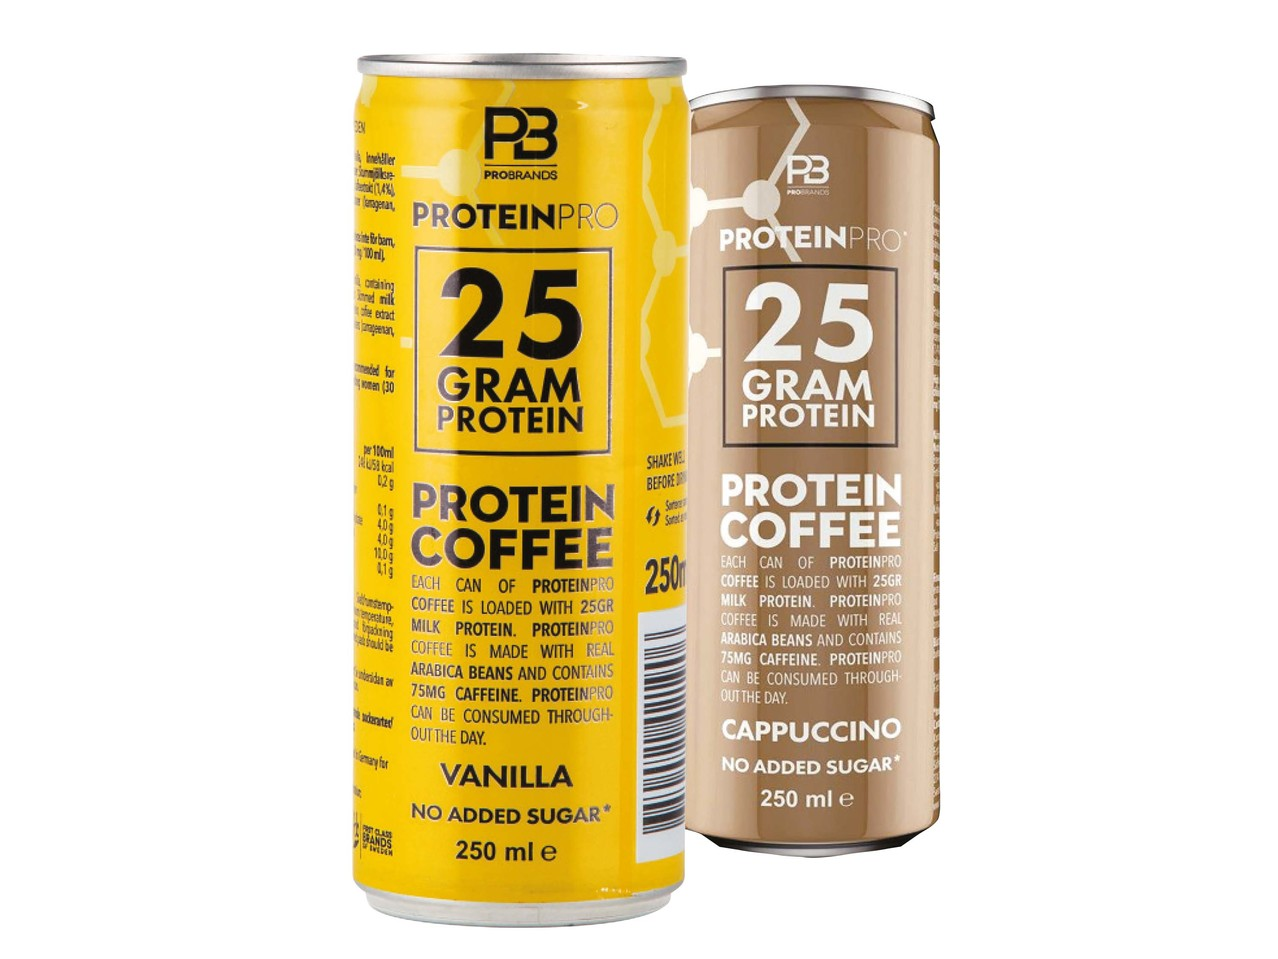 Protein Coffee Lidl Ireland Specials Archive